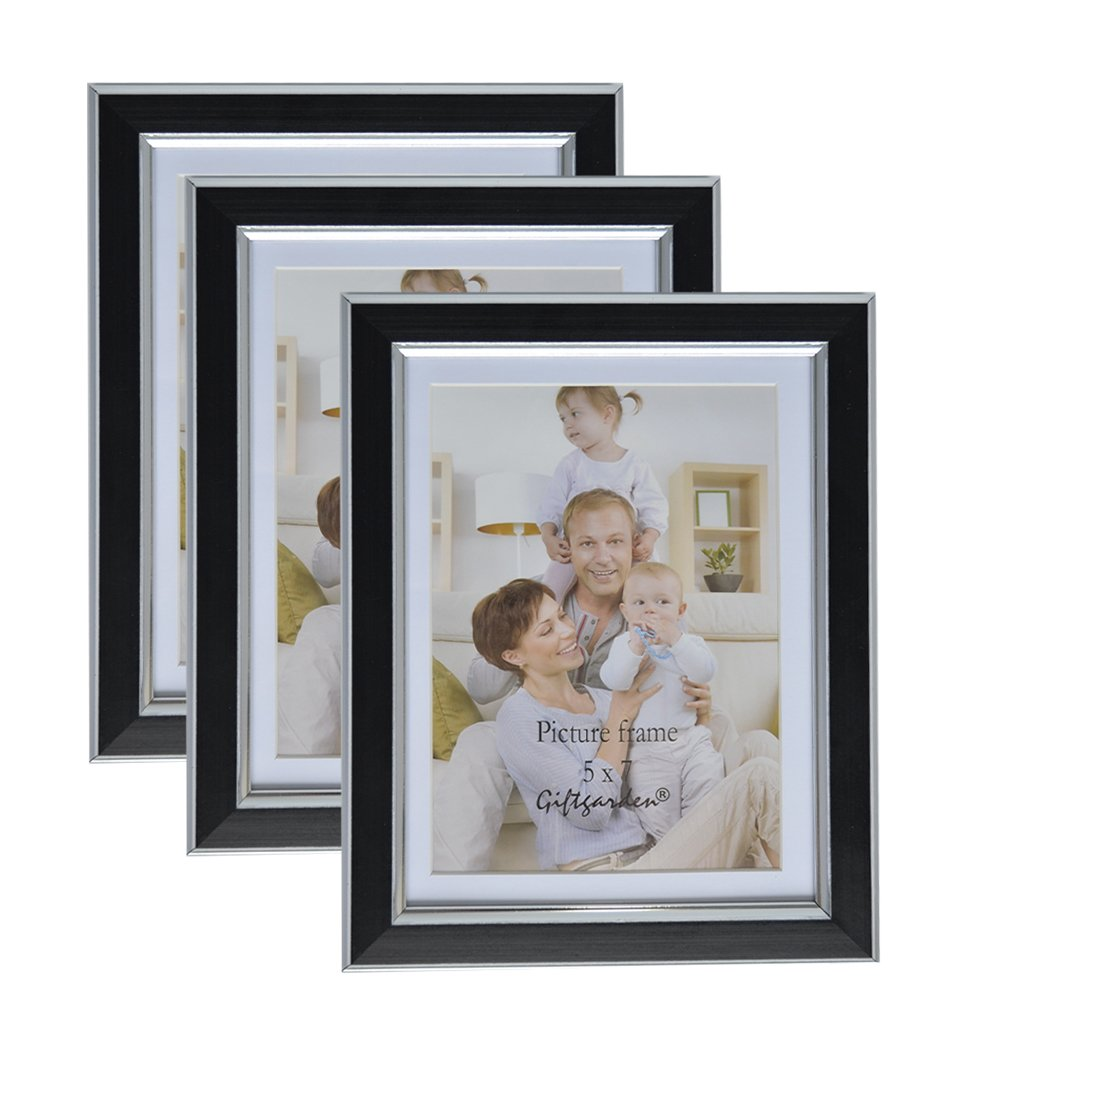 Giftgarden 5x7 Picture Frames Wall, Display 5x7 Photo Mat 6x8 without Mat, Black, Set of 3 pcs